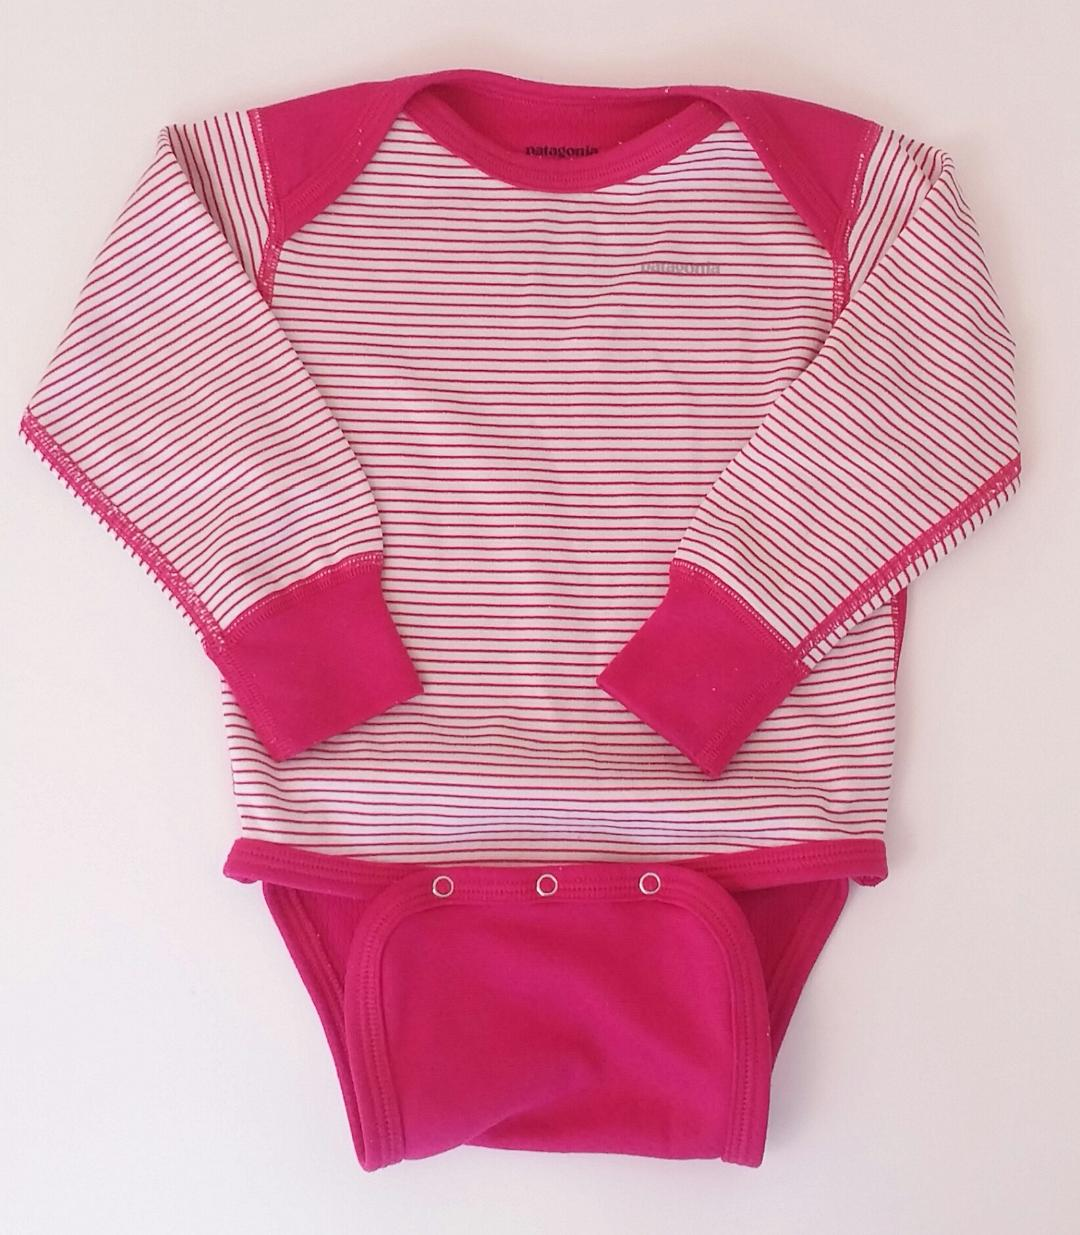 Patagonia-6-12-MONTHS-2-Piece-Outfit_2122219A.jpg